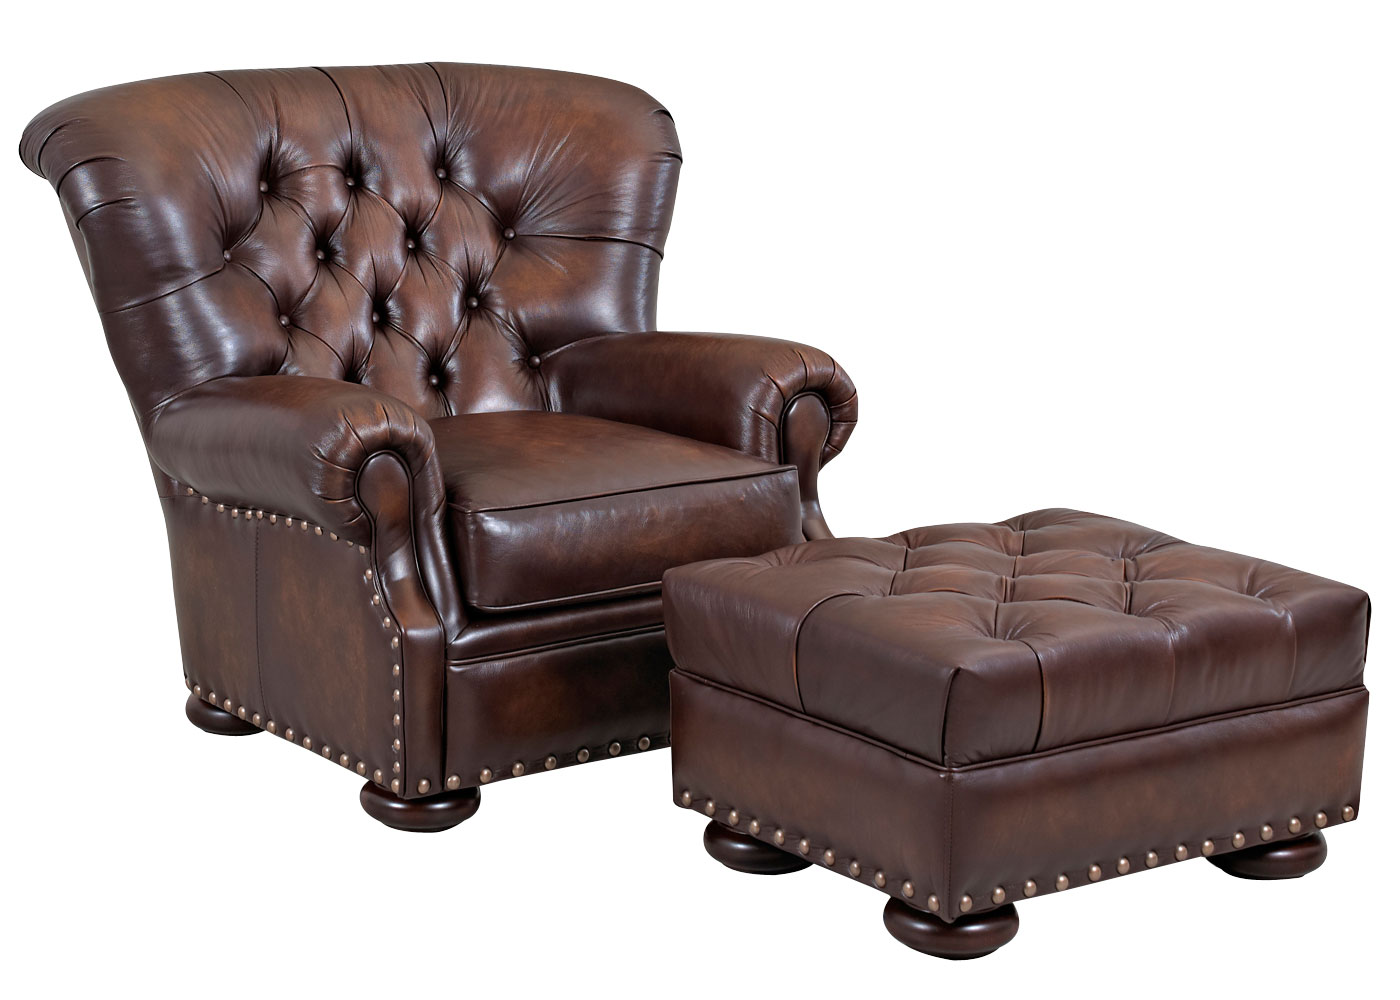 Leather Club Chair Large Tufted Back Leather Club Chair Club Furniture